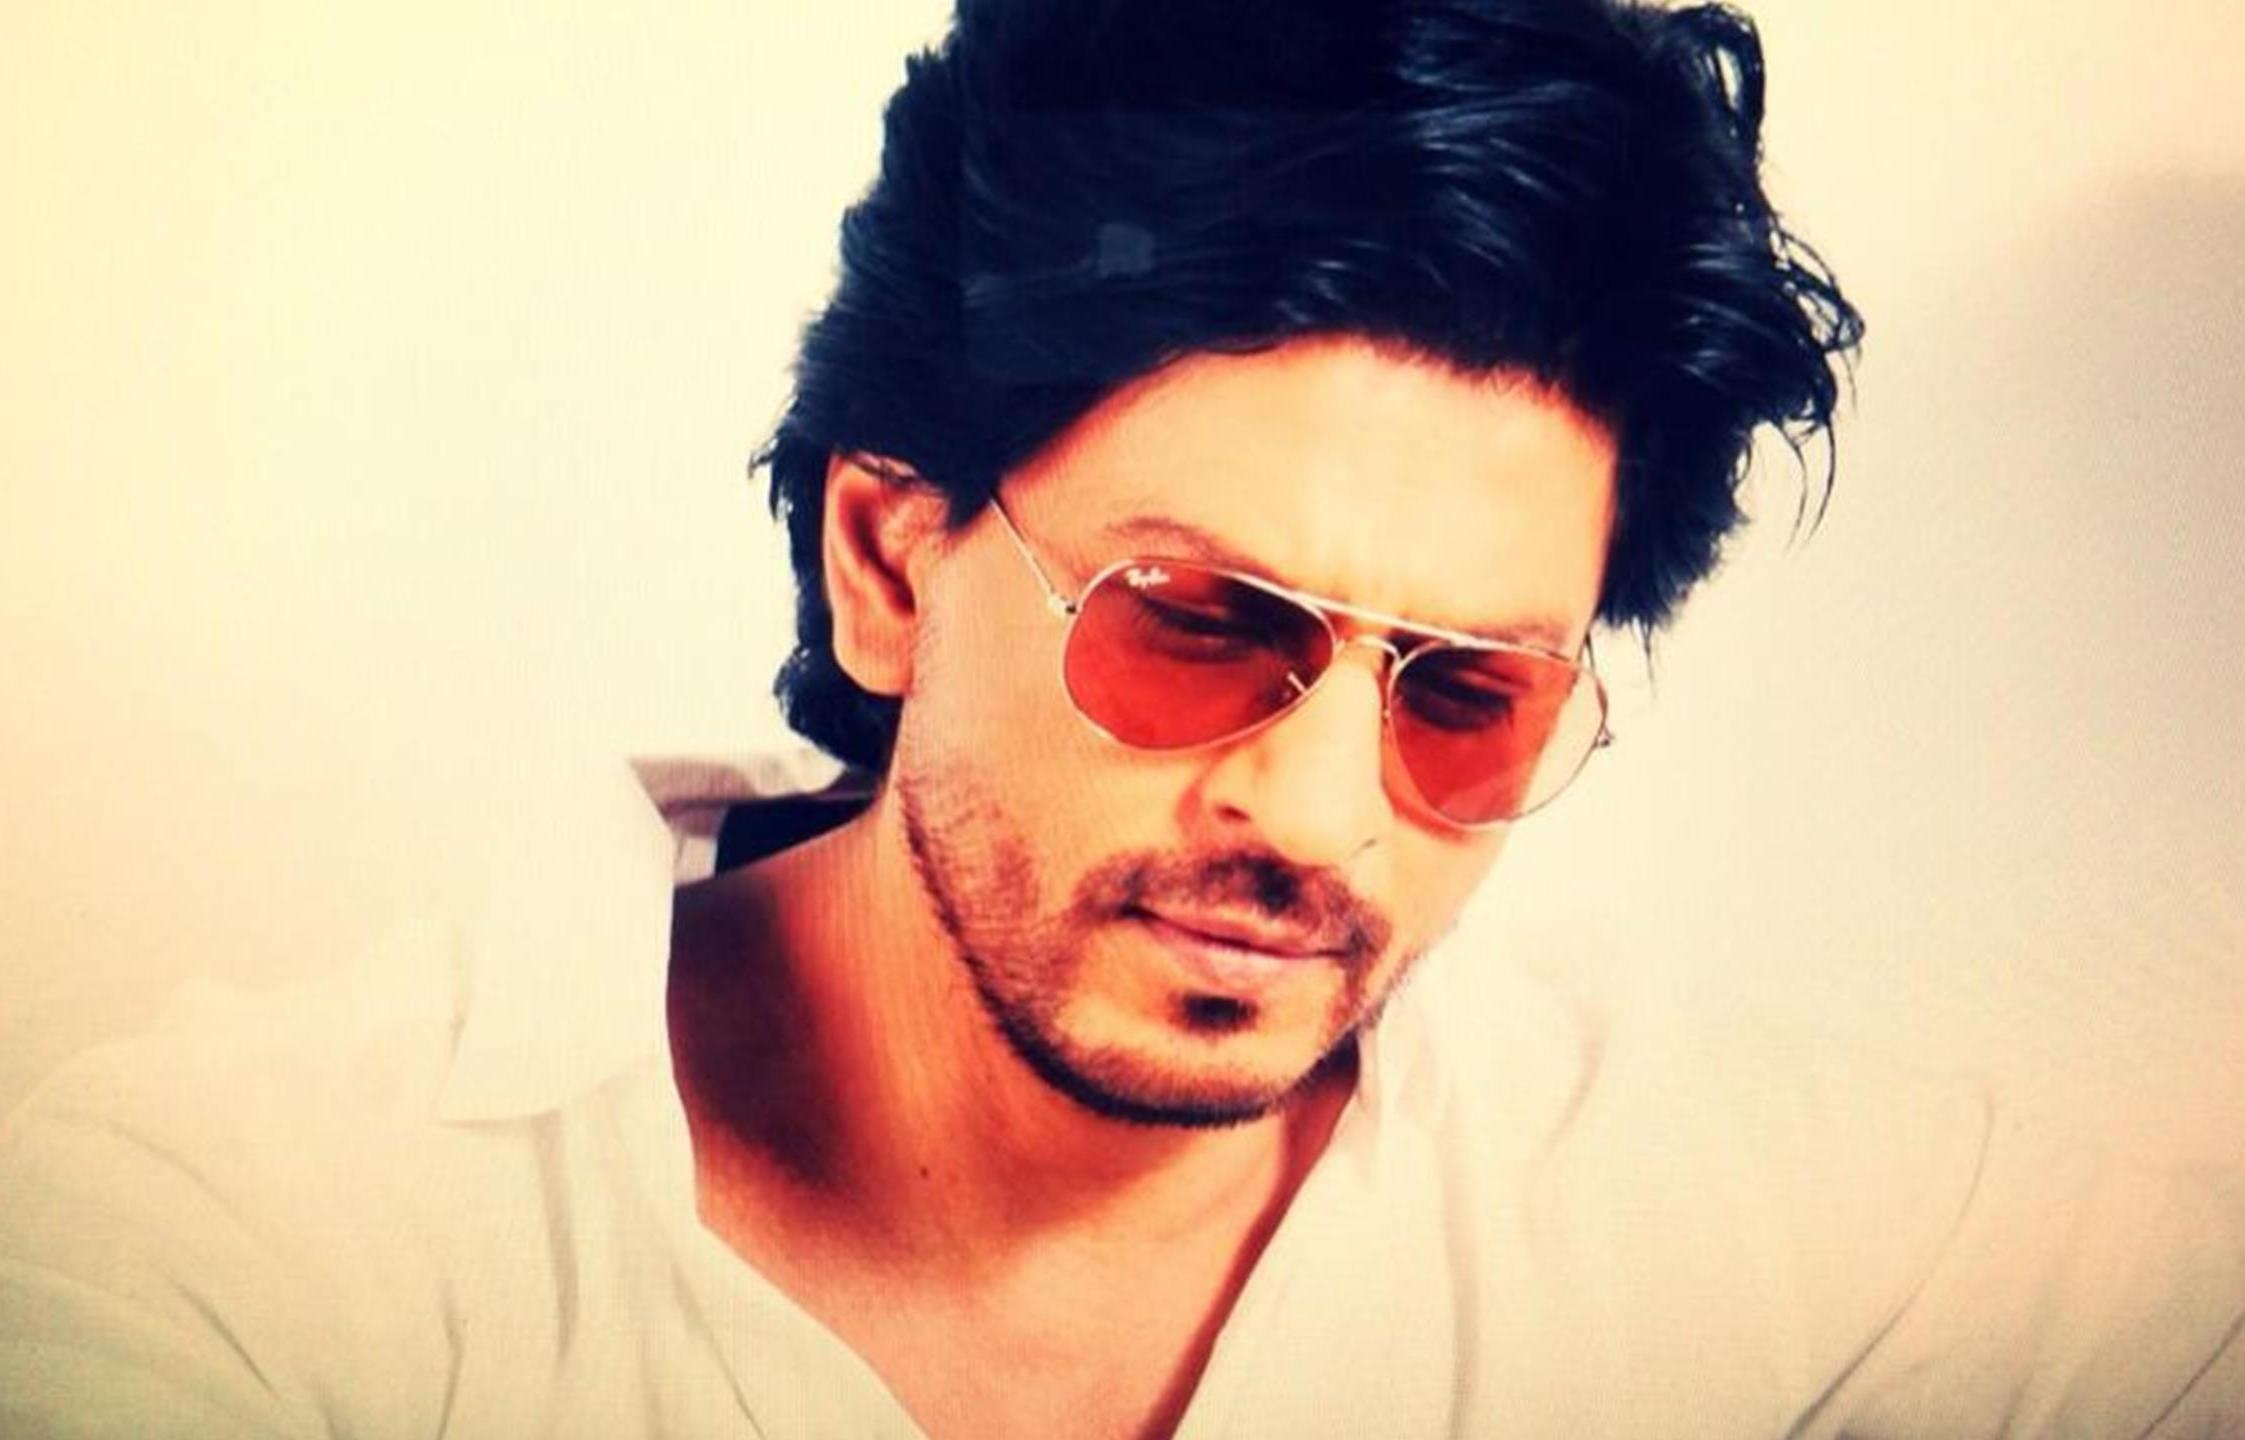 Photo Credit: http://www.youthconnect.in/2014/11/02/heart-warming-stories-shah-rukh-khan/